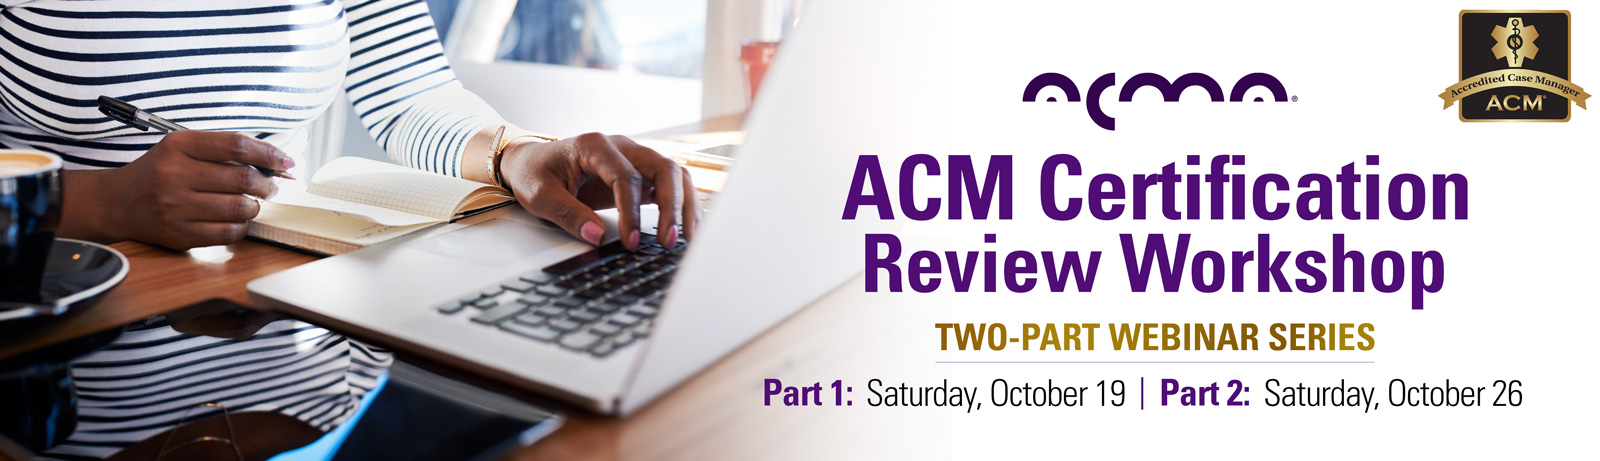 Fall 2019: ACM Certification Review Webinar